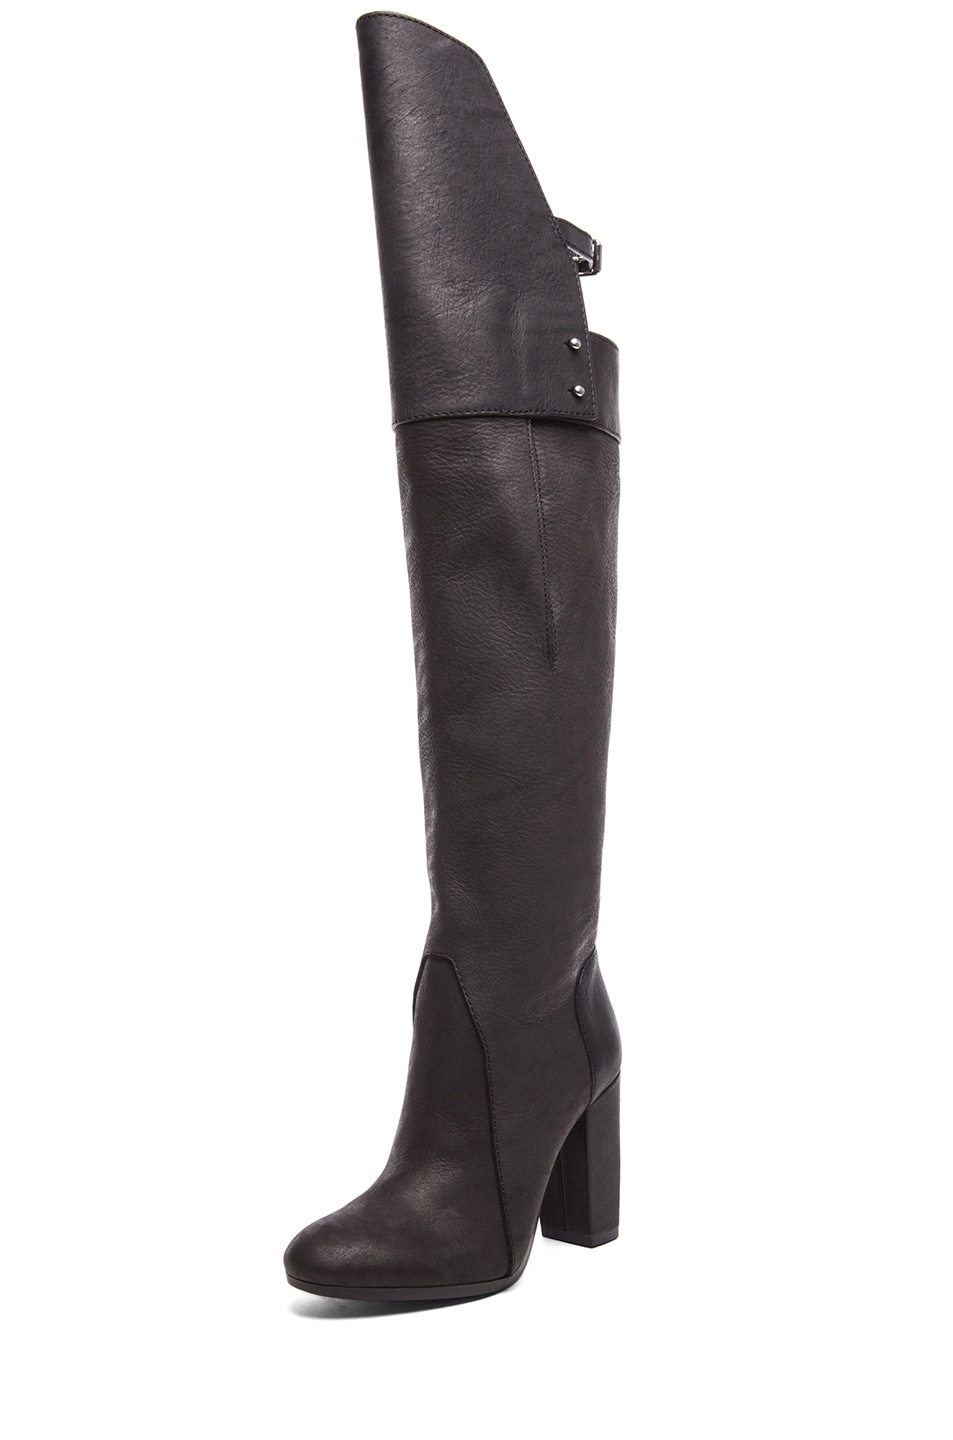 Image 1 of 3.1 phillip lim Ora Leather Over the Knee Boots in Black